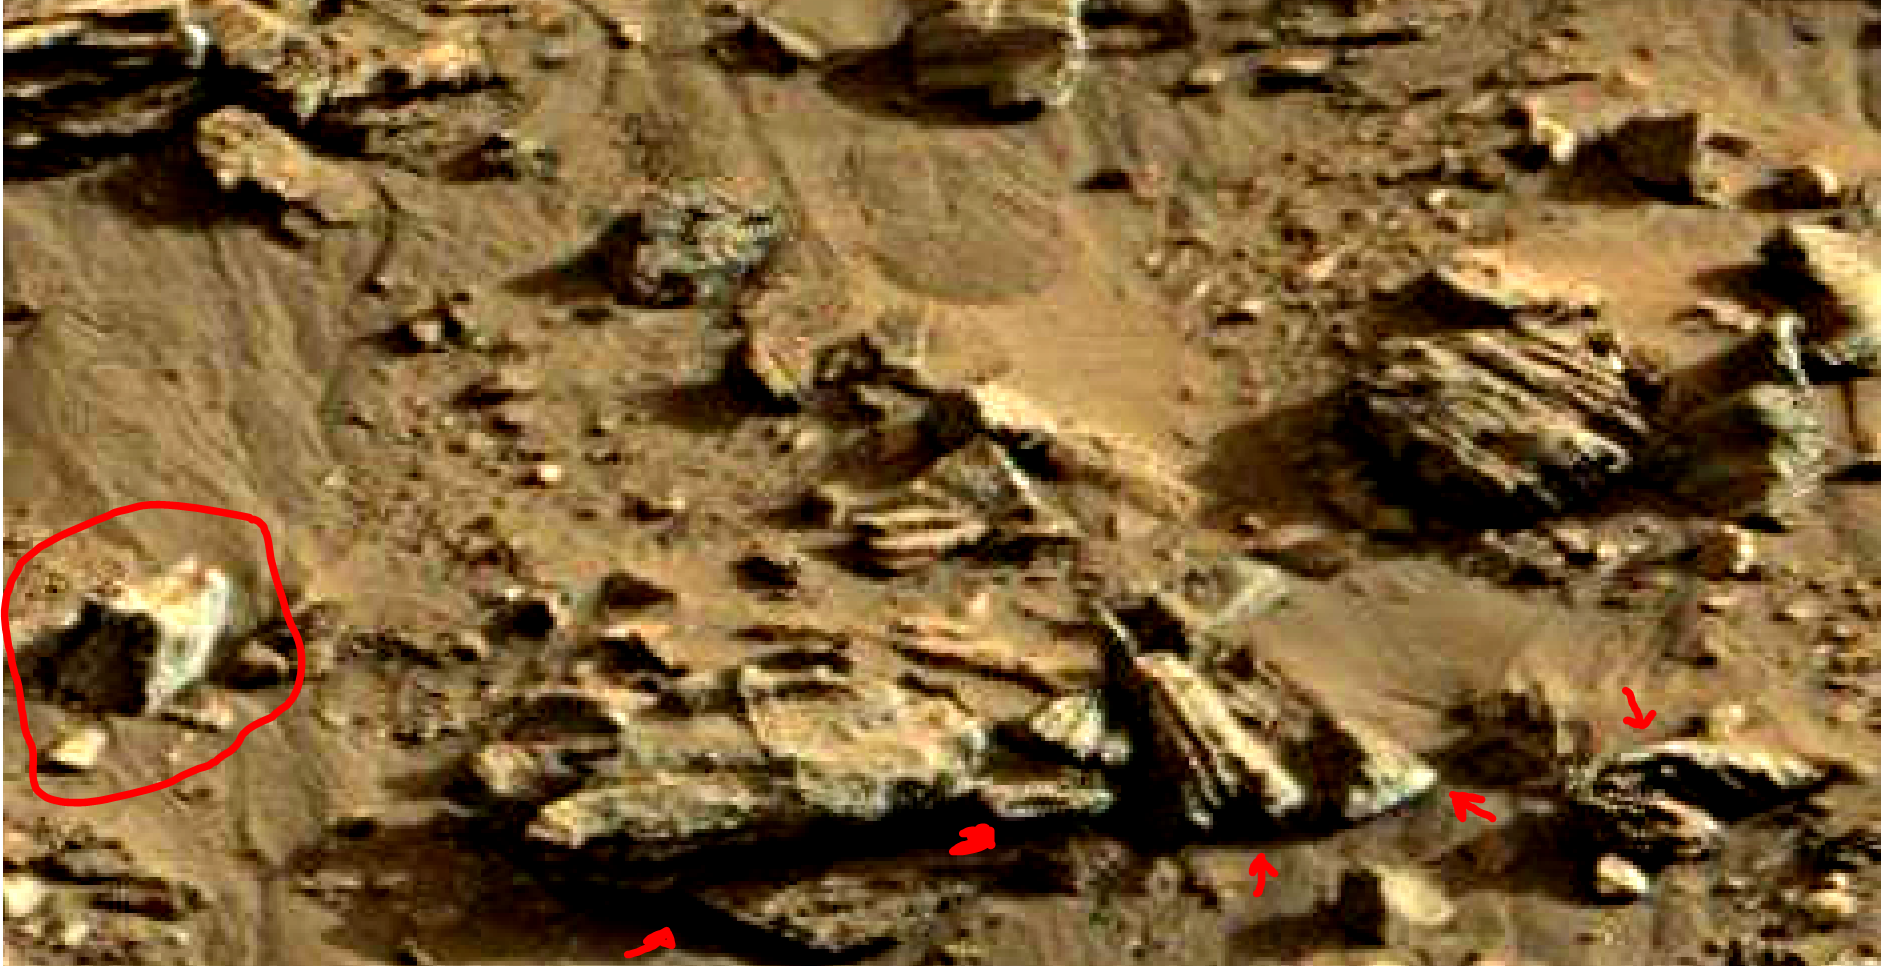 mars sol 1419 anomaly artifacts 8 was life on mars